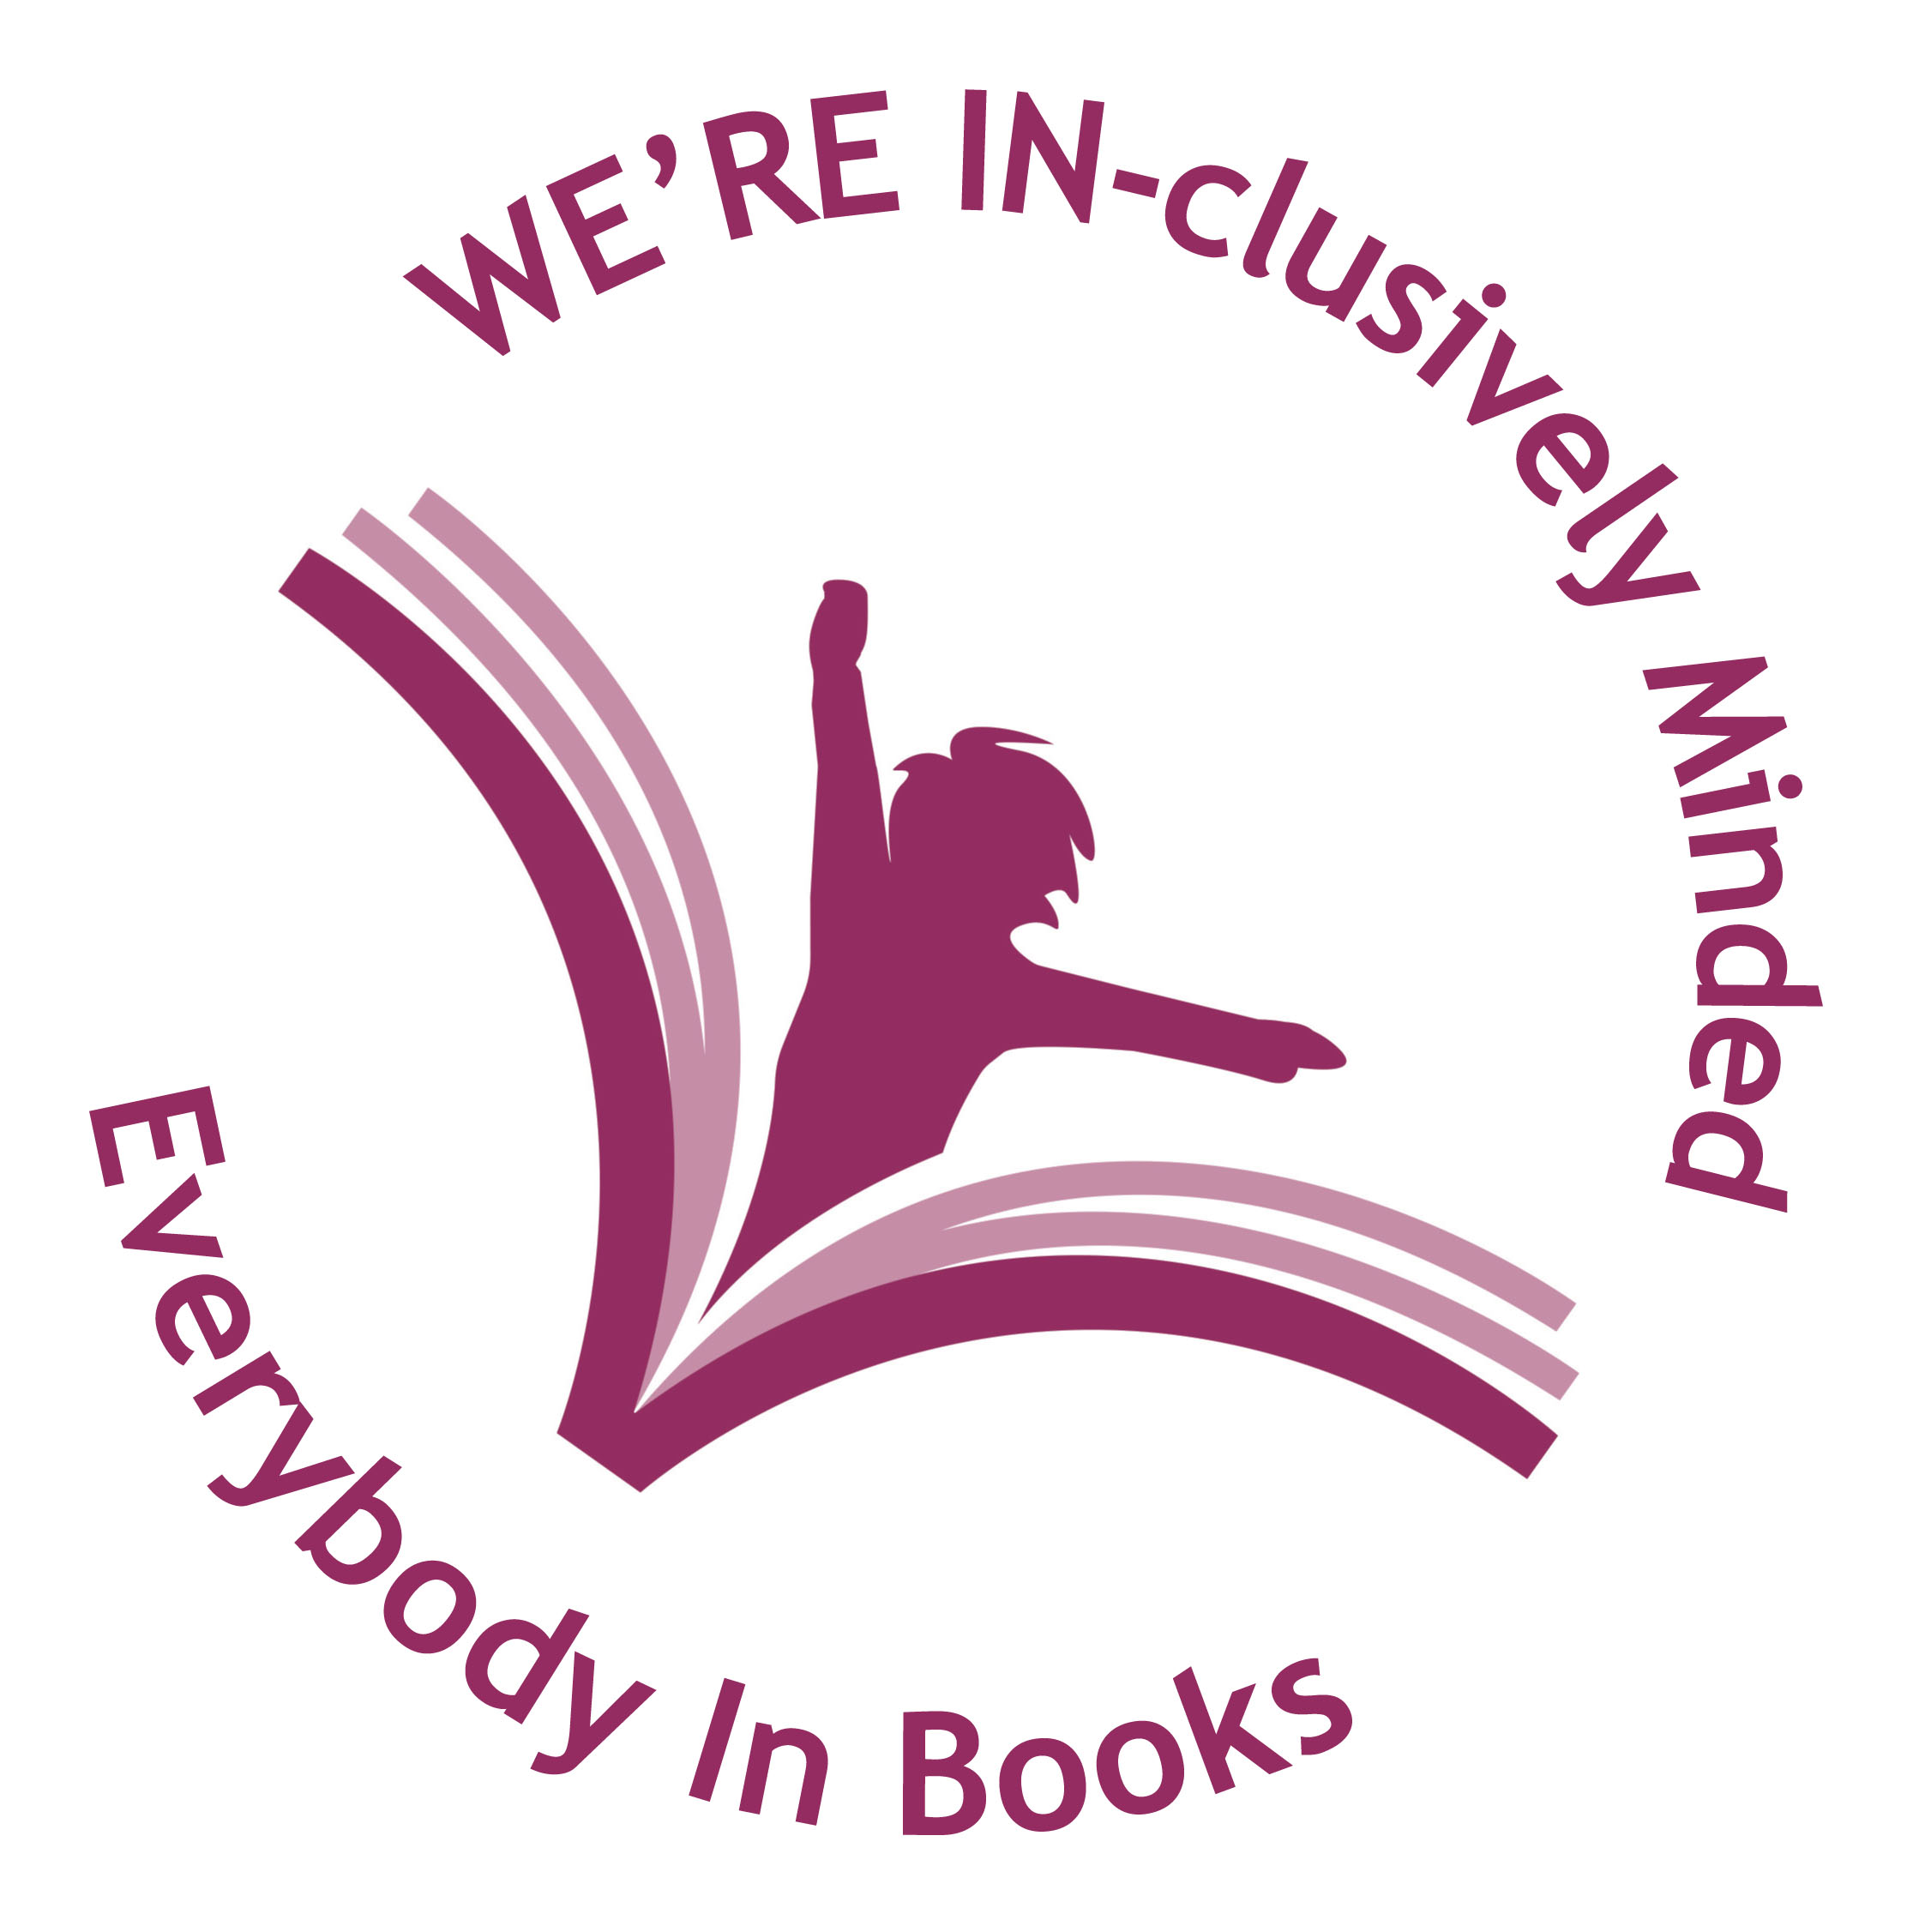 Libraries - guidance on inclusion and diversity